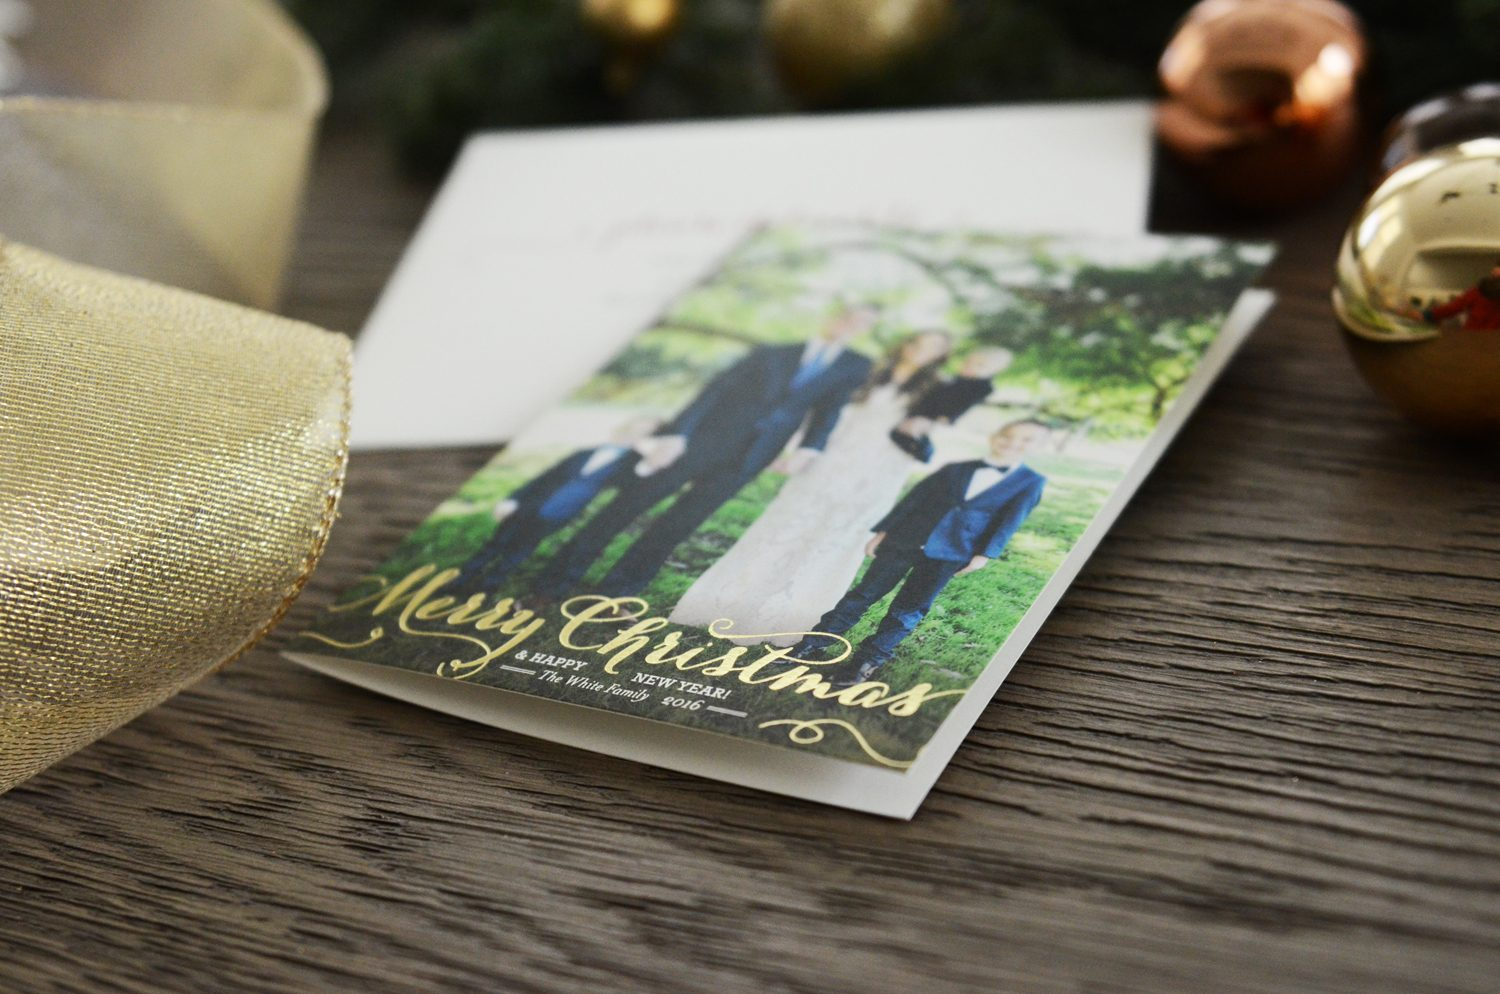 Merrick's Art Gold Foil Christmas Cards